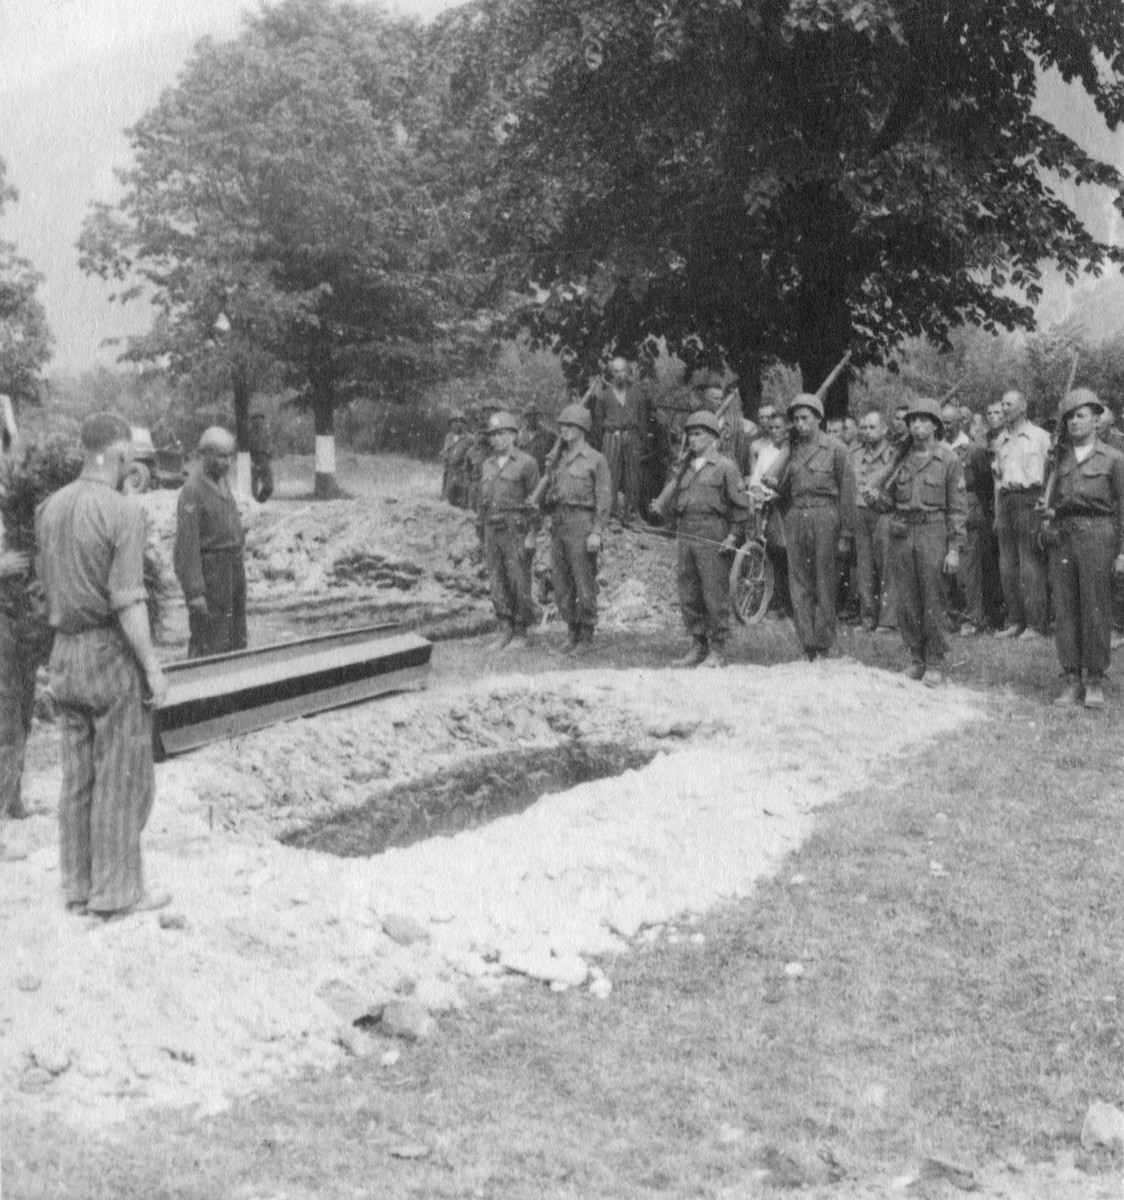 American soldiers provide a military burial for a Soviet colonel who had been imprisoned in Ebensee and died from tuberculosis.  Pictured from left to right are Kansas Fleming, Russell Pett, Ray Santos, Dick Pomante, and John Wright.